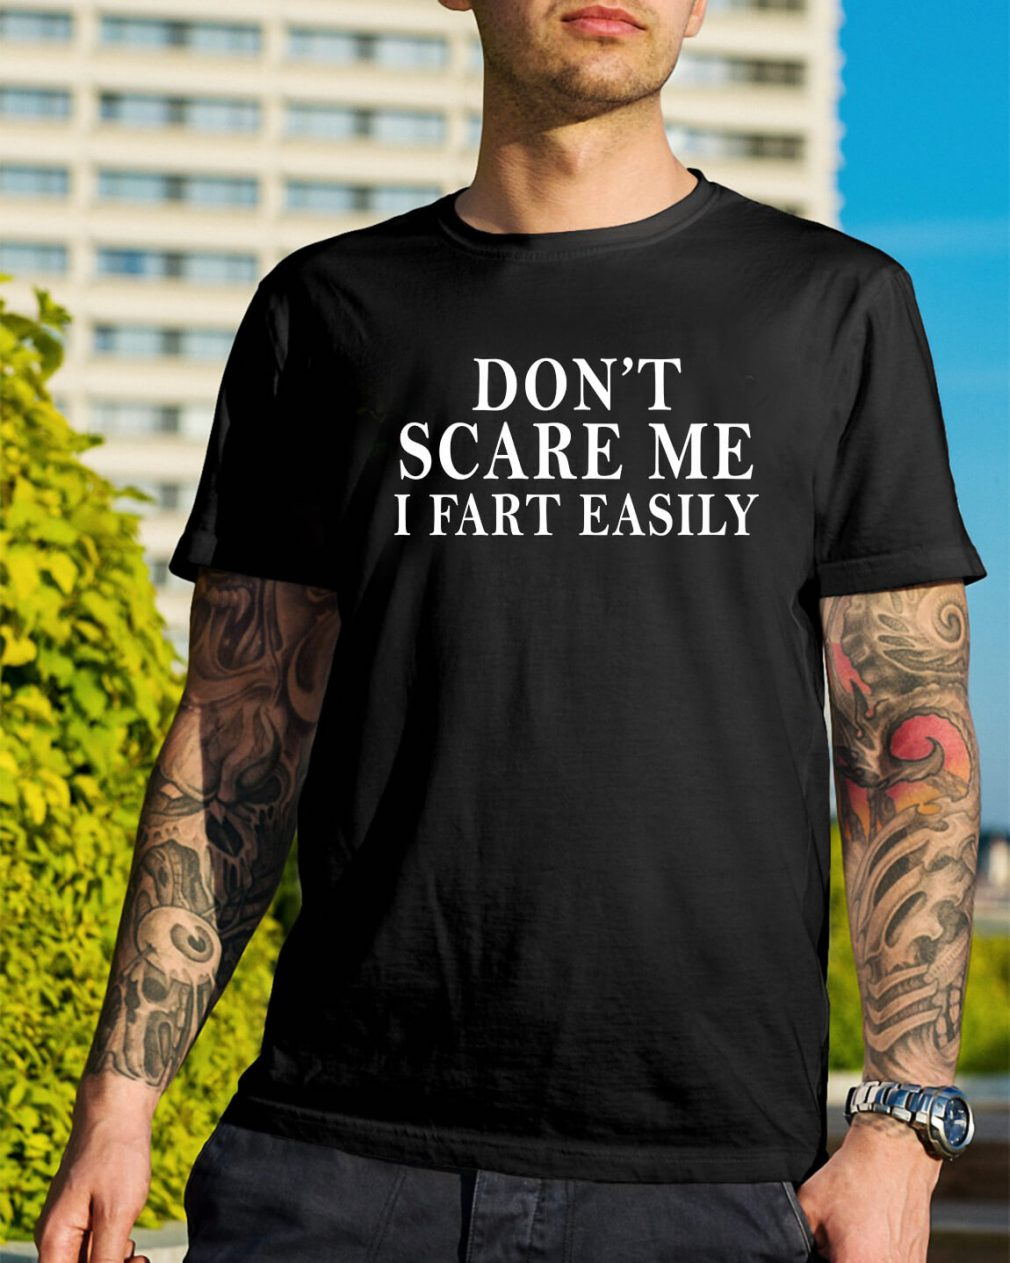 Don't scare me I fart easily shirt